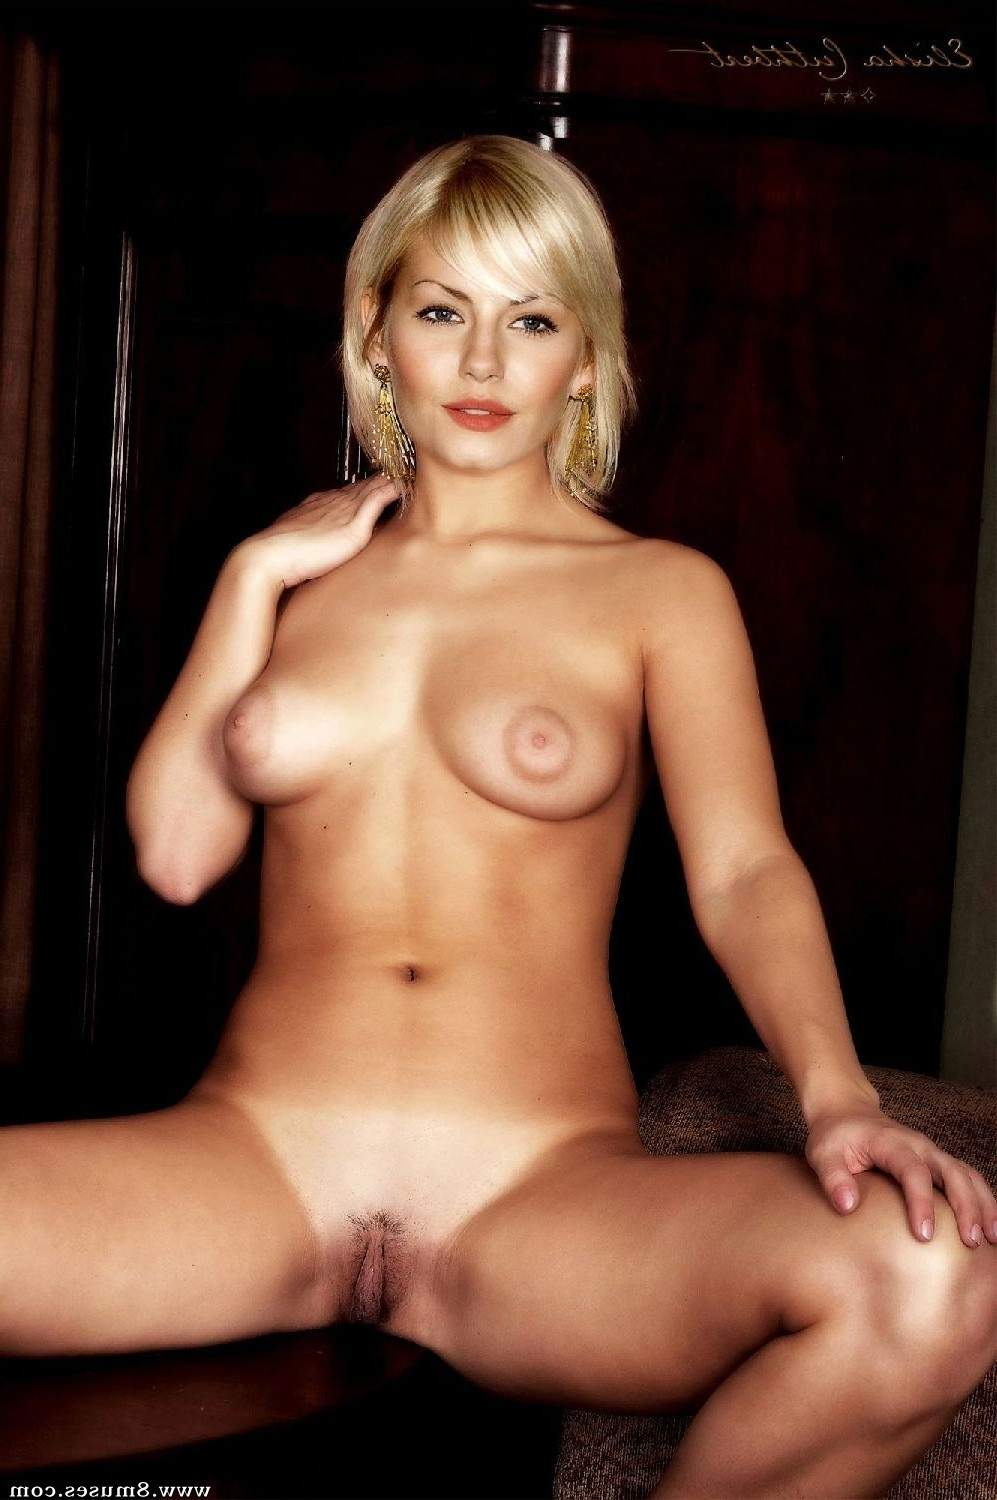 Fake-Celebrities-Sex-Pictures/Elisha-Cuthbert Elisha_Cuthbert__8muses_-_Sex_and_Porn_Comics_250.jpg